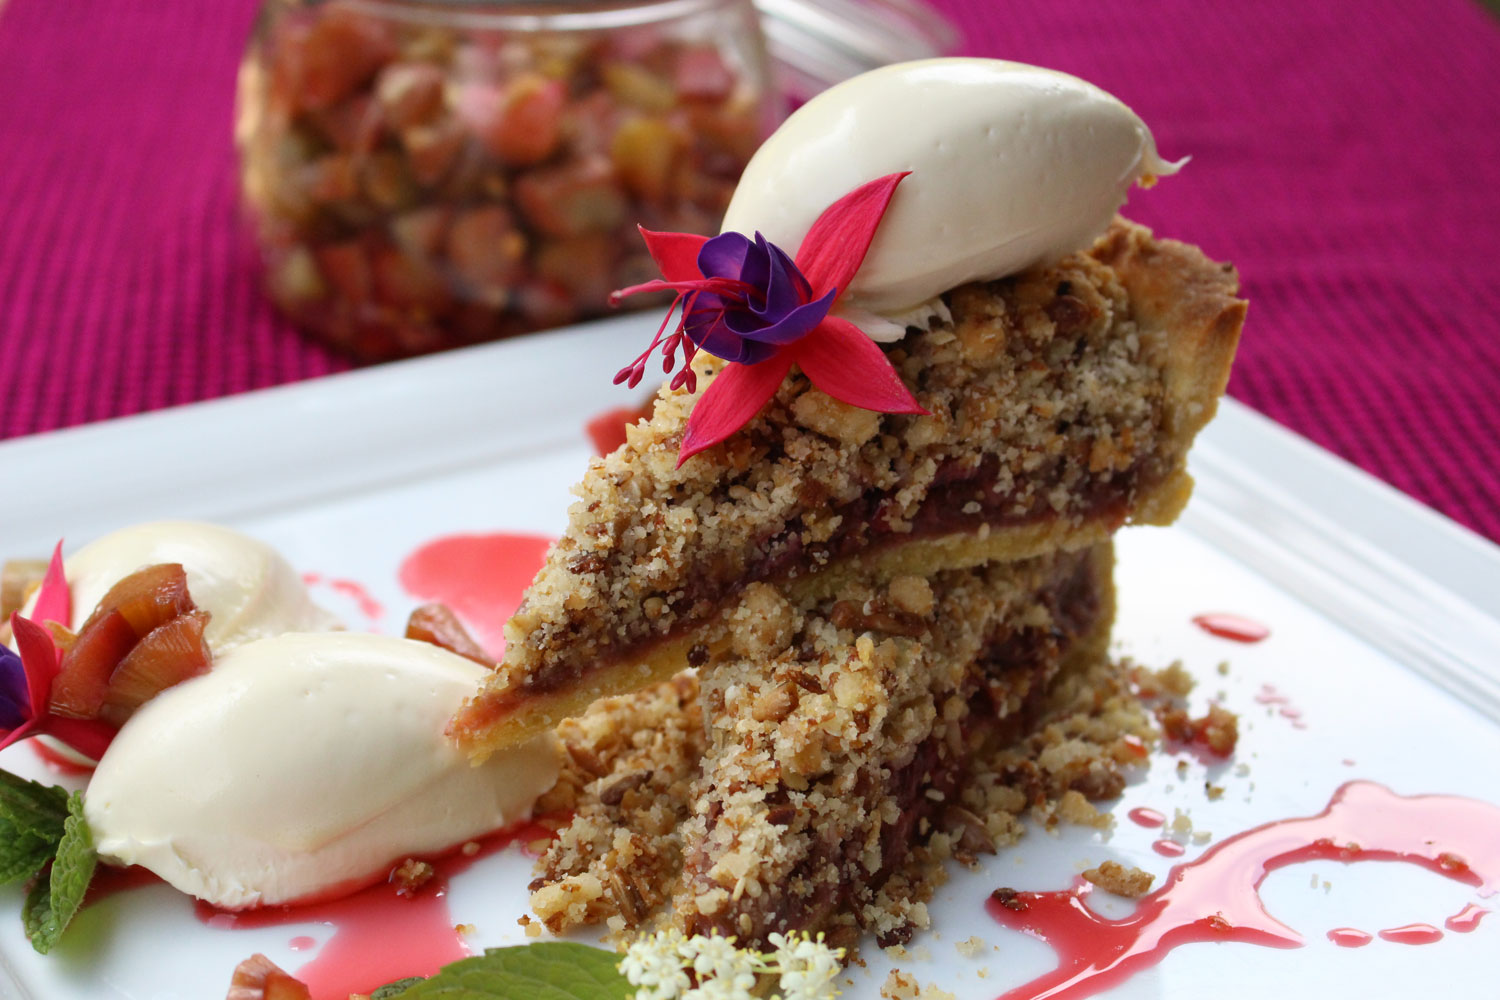 This Rhubarb Crumble pie is fast becoming a firm favourite at Gibb's Farm. It is a great dish to complete a dinner party and with the granola topping, we think that it is perfect for breakfast as well!